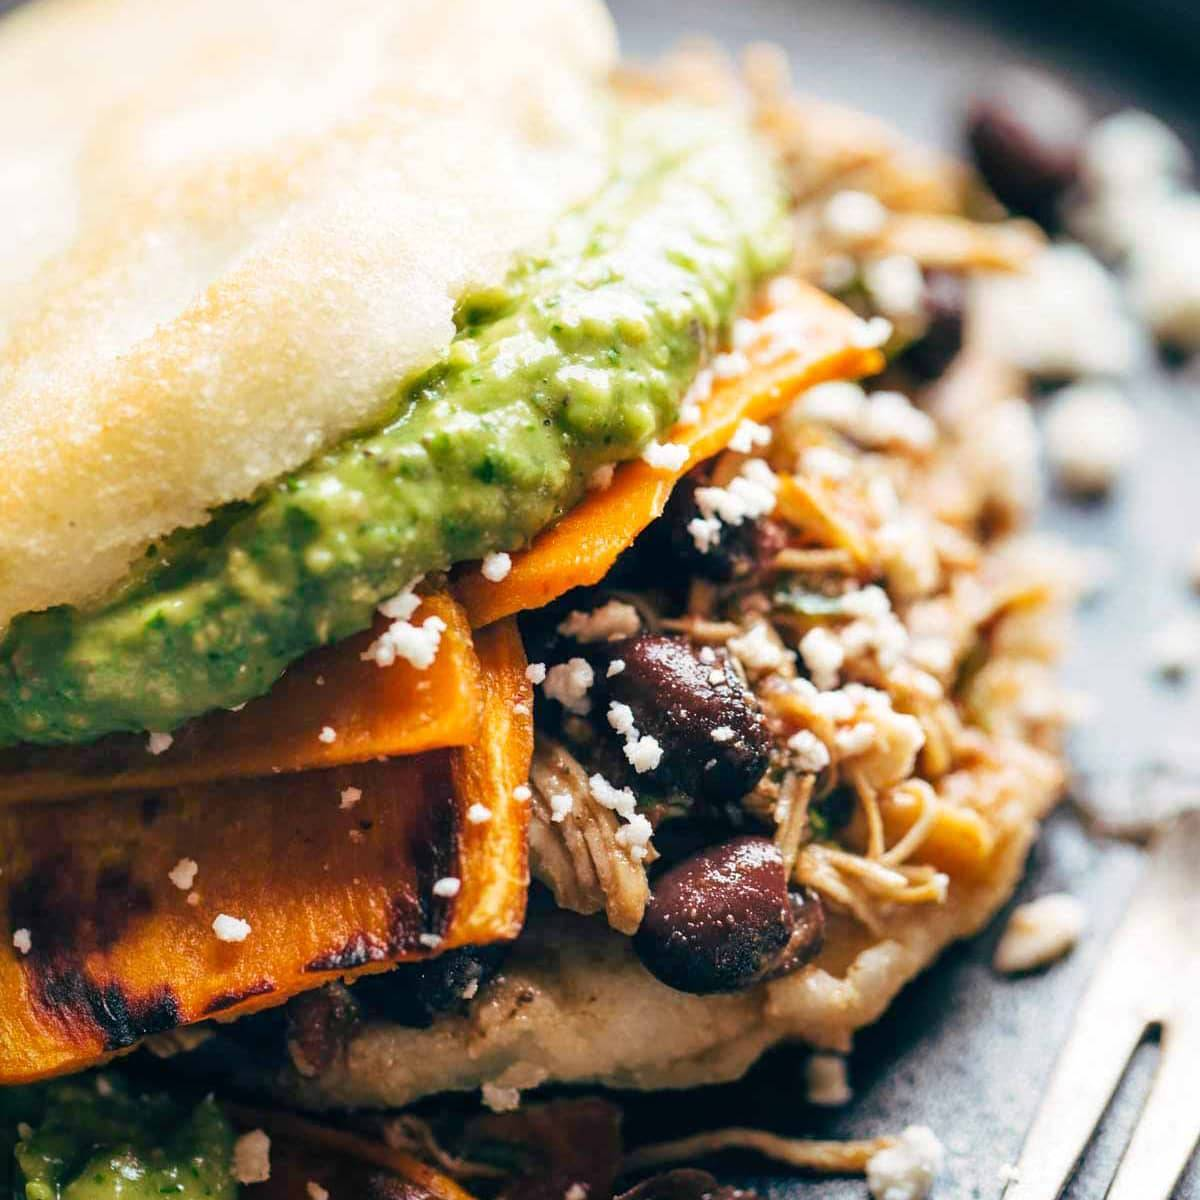 Arepas with sweet potato, carnitas, and black beans.